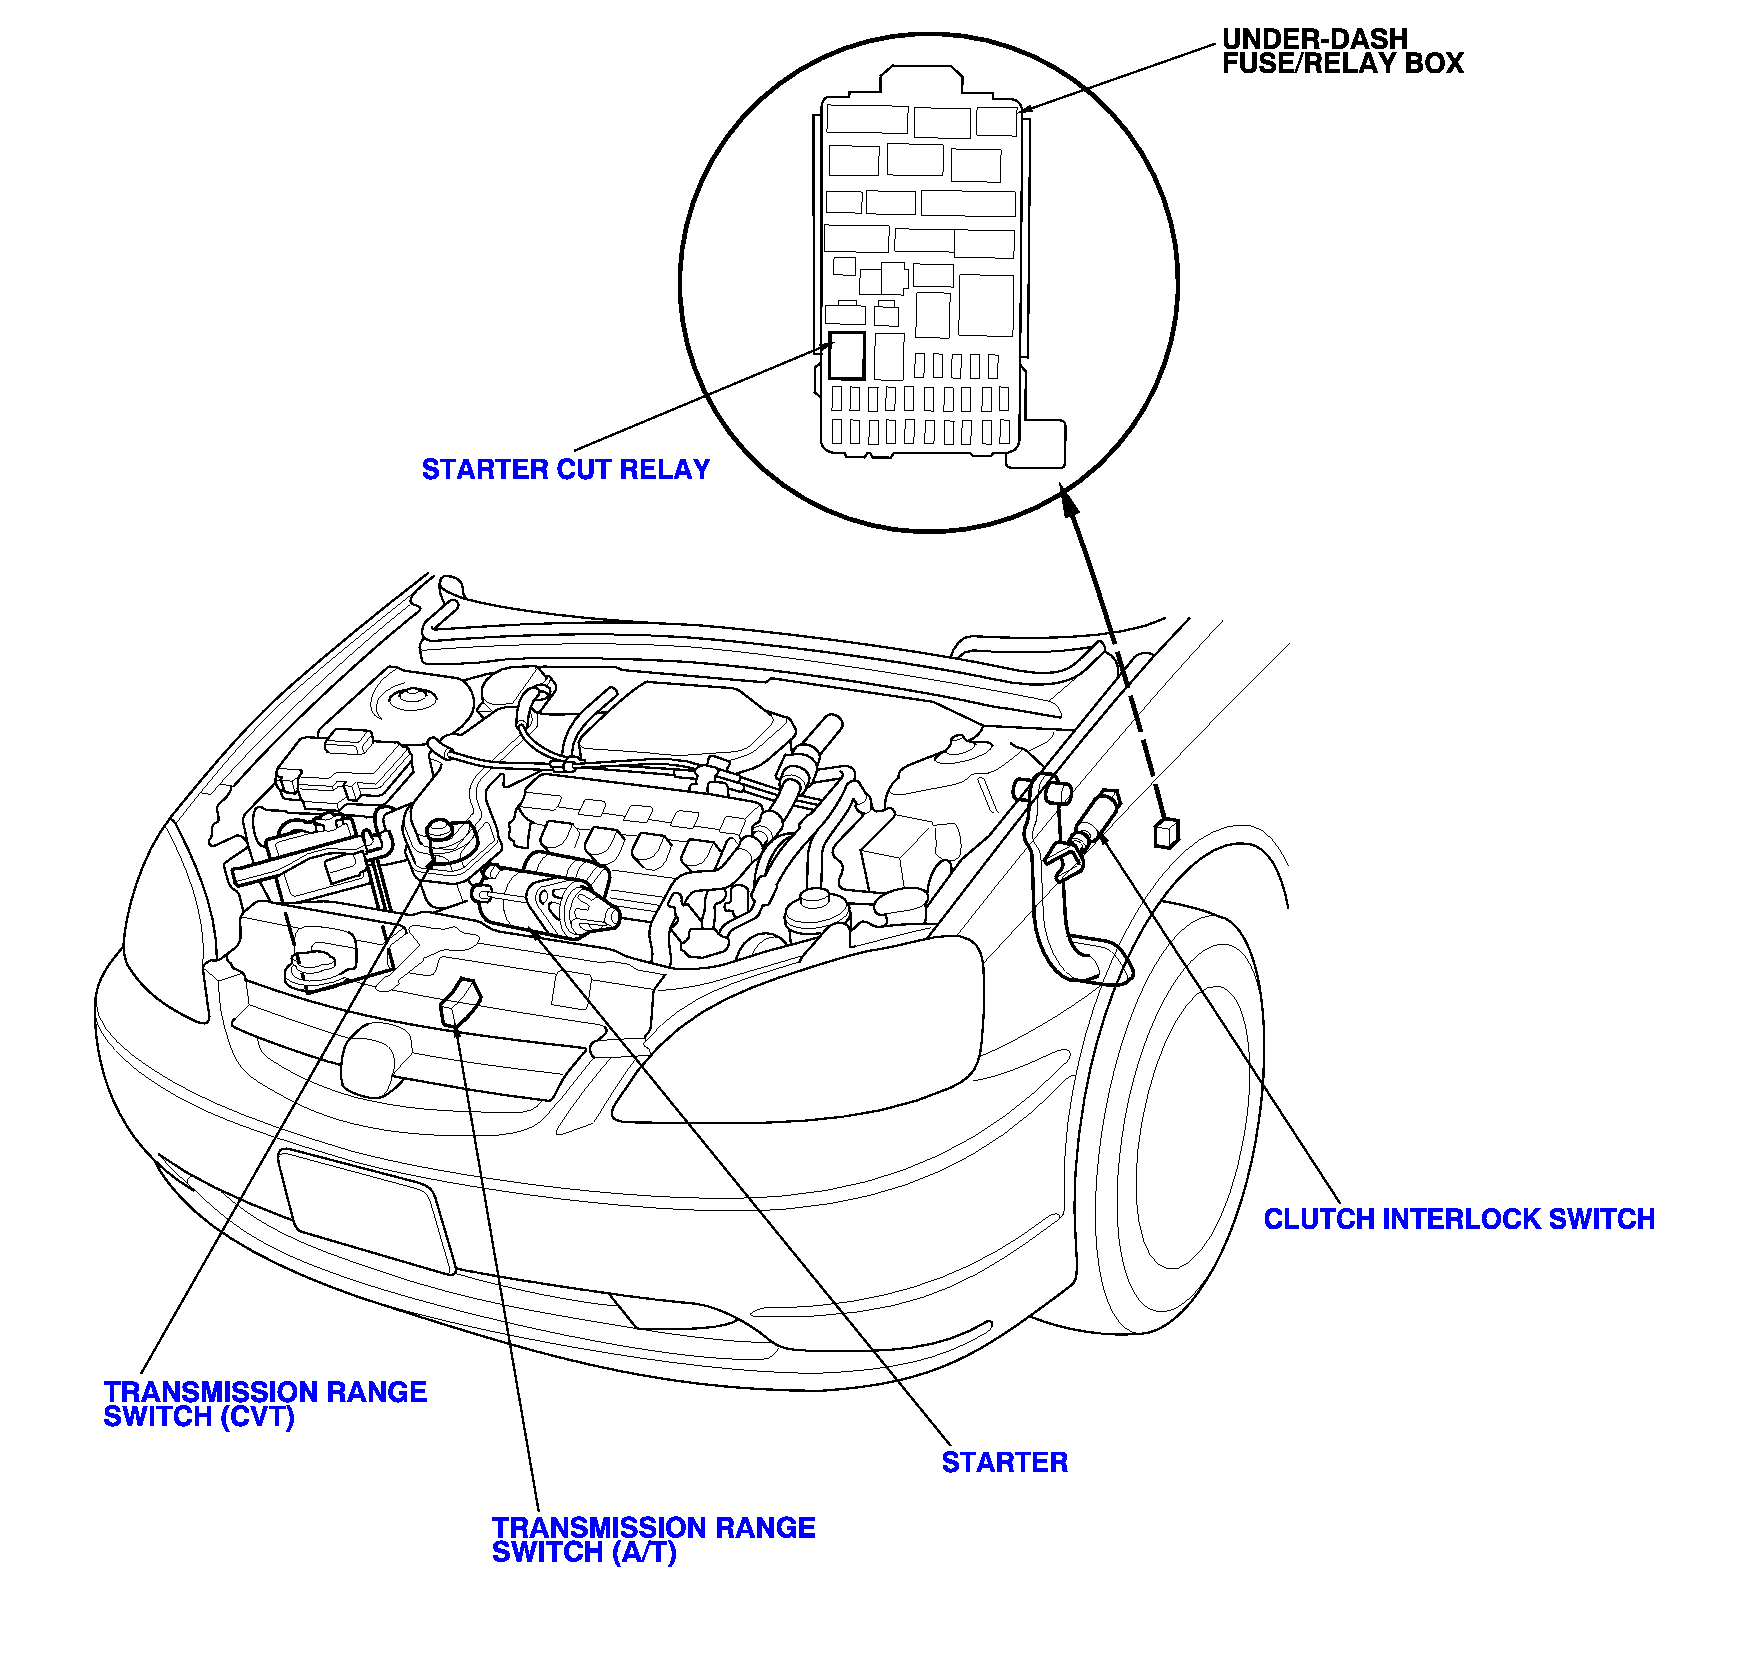 0l5gk Replace Starter 2002 Honda Civic Si on Honda Civic Fuse Box Diagram